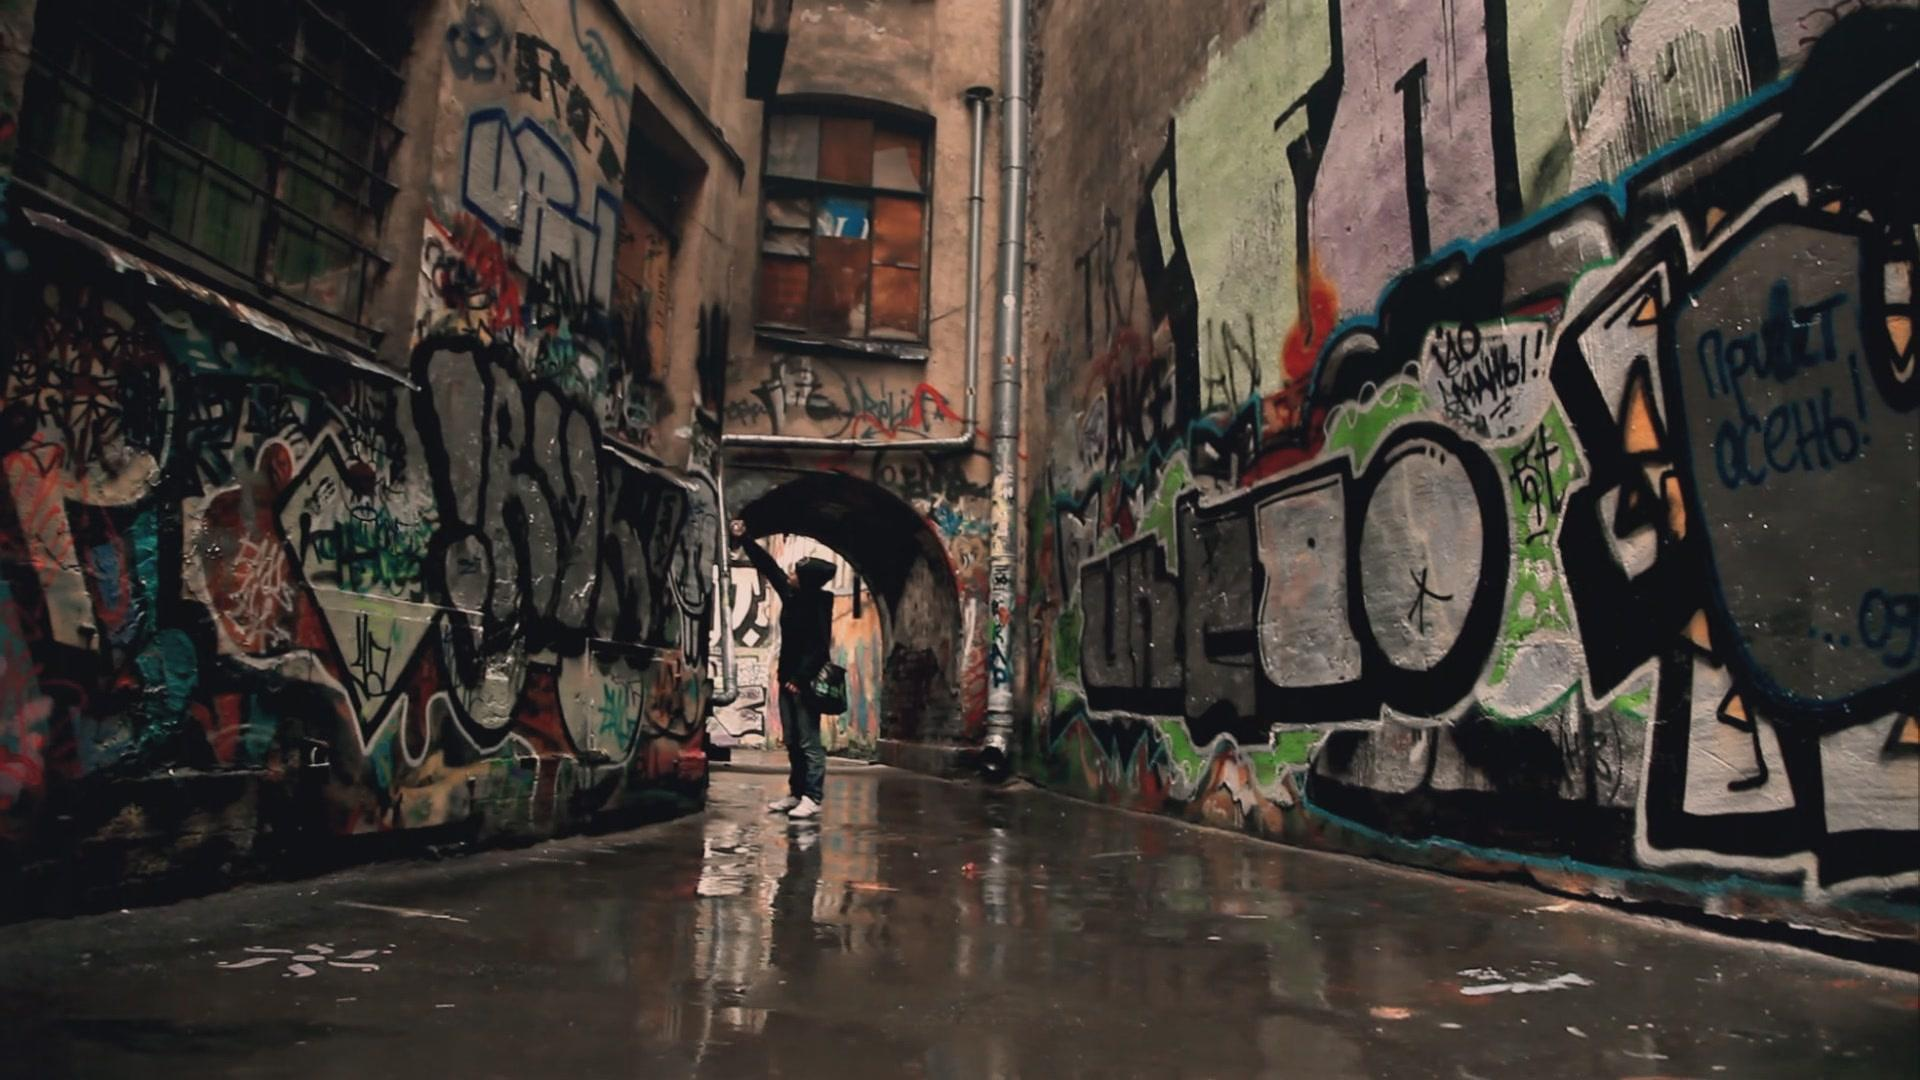 urban graffiti art wallpaper - photo #7